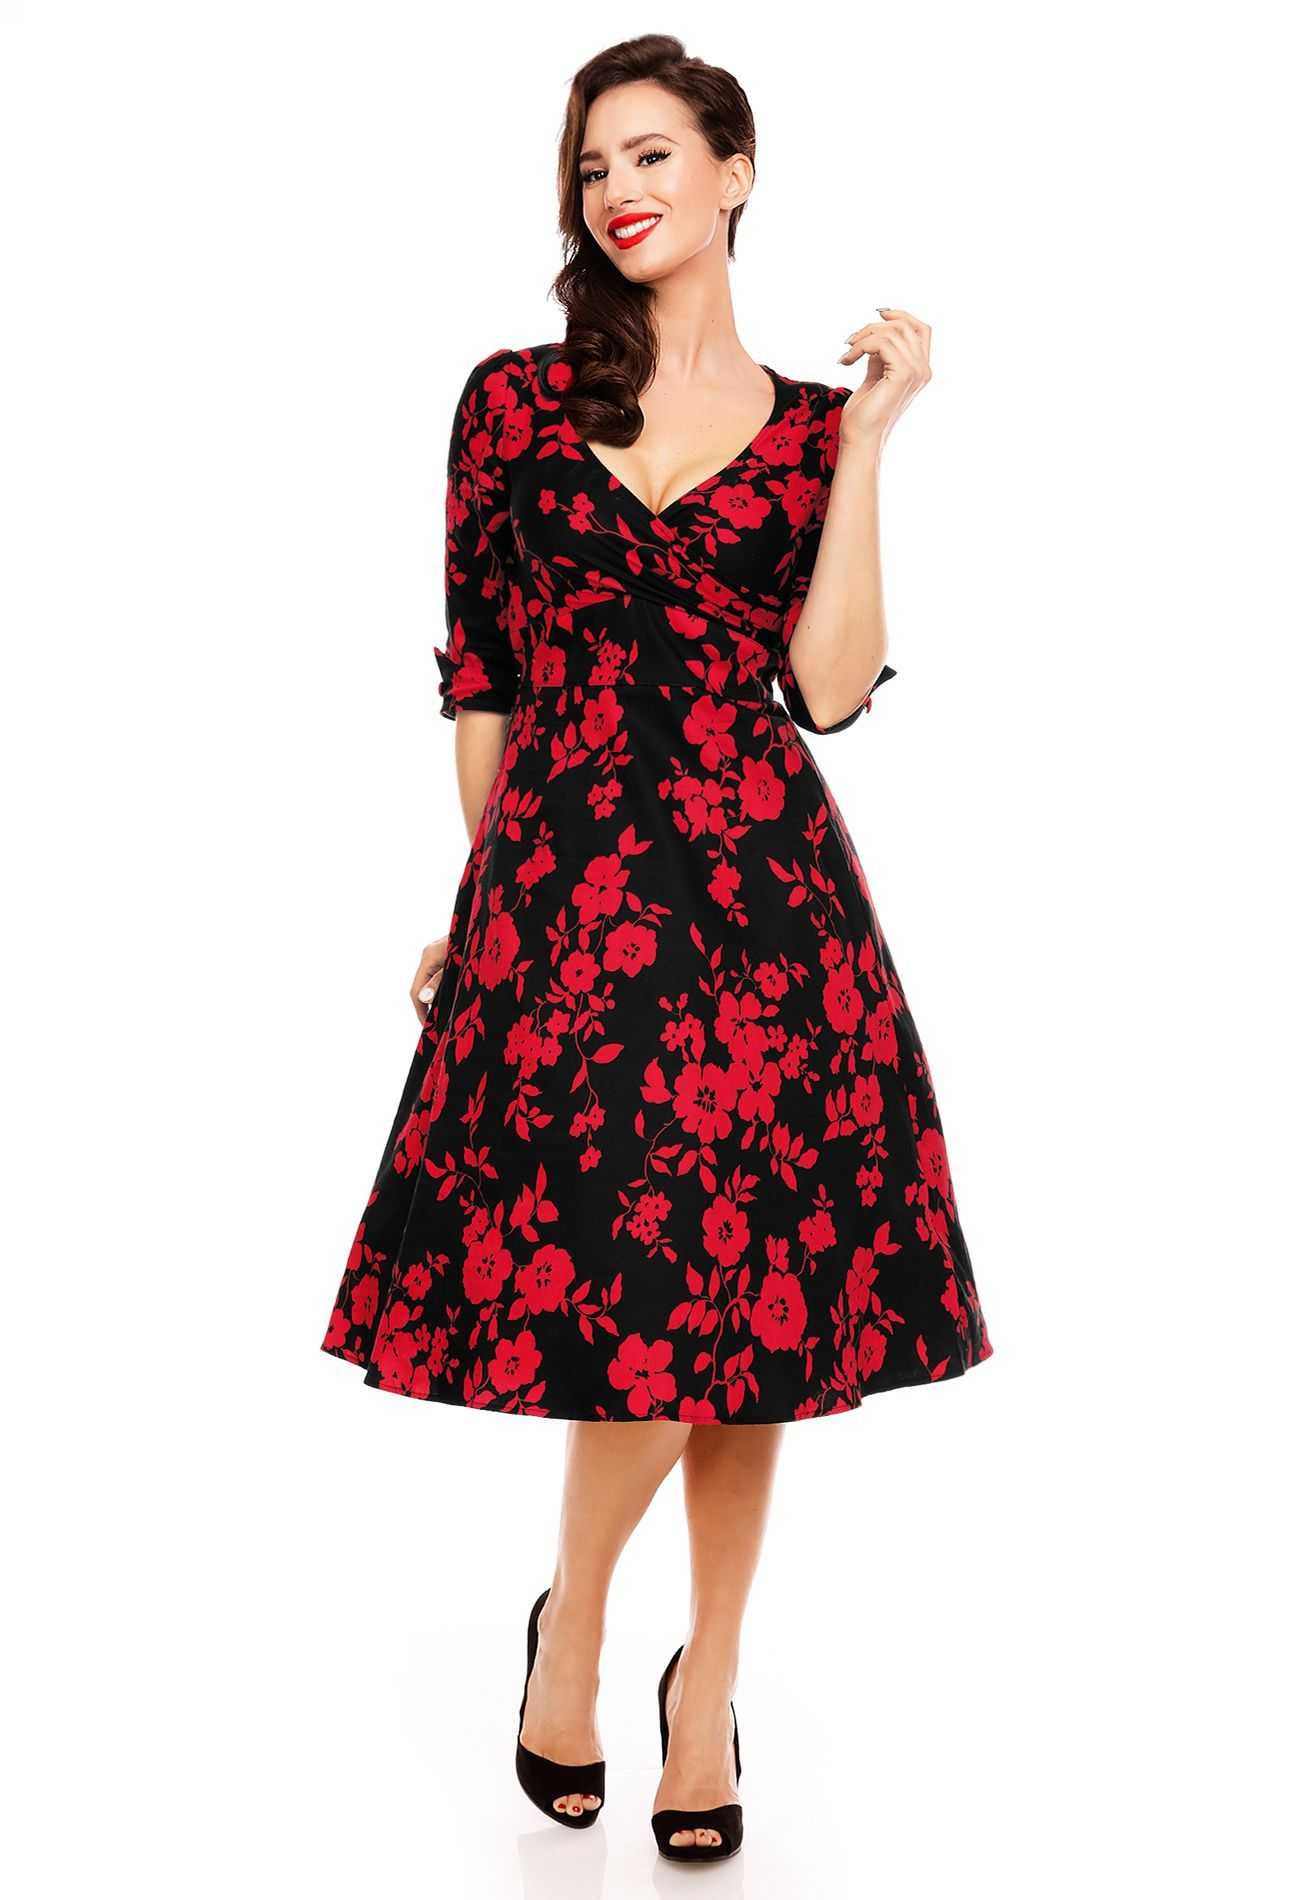 Katherine long sleeve us style swing dress in blackred floral